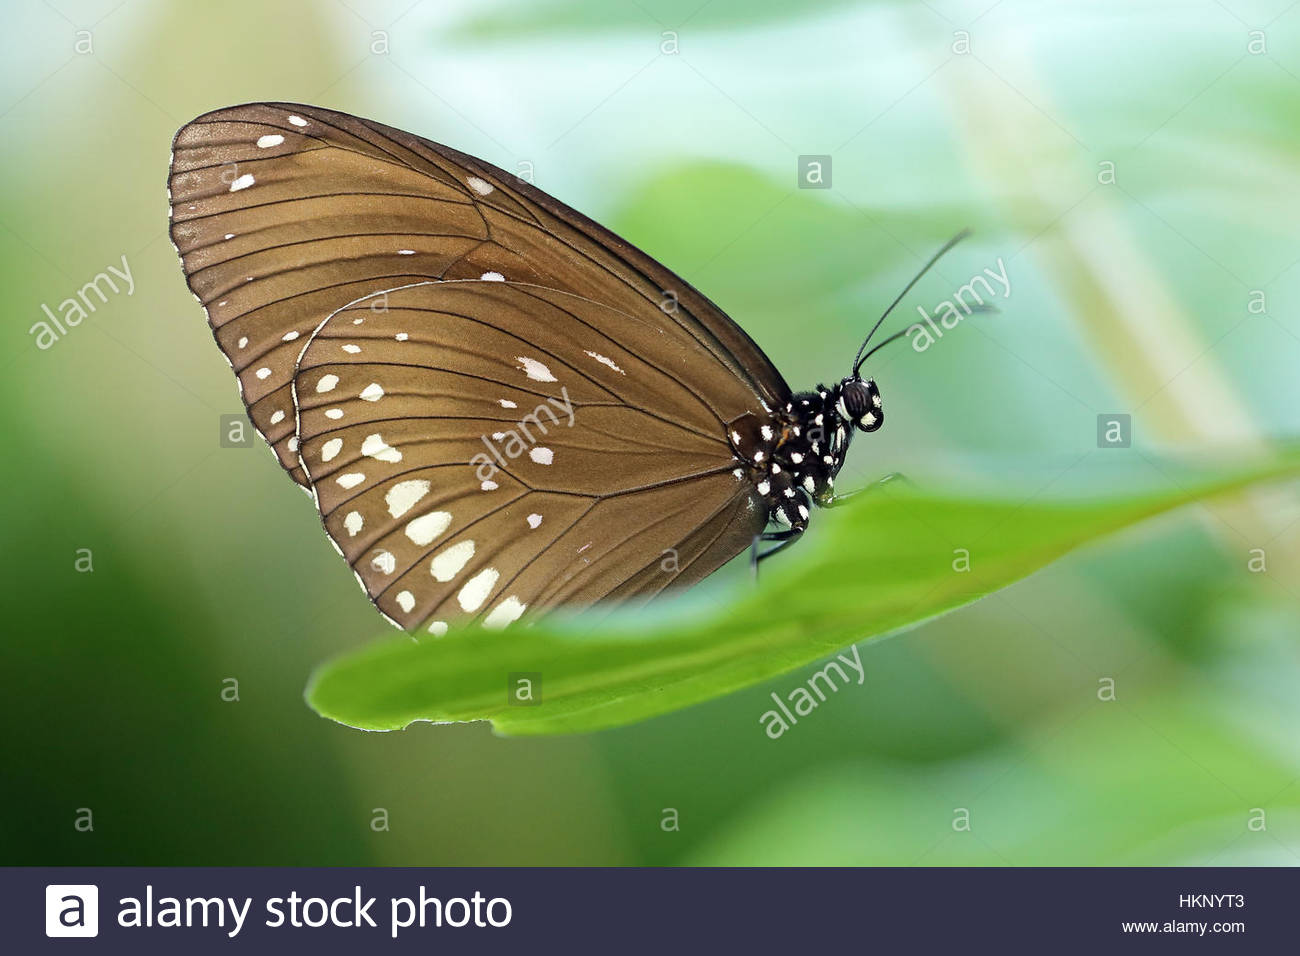 A Spotted black crow butterfly resting on a green leaf. - Stock Image